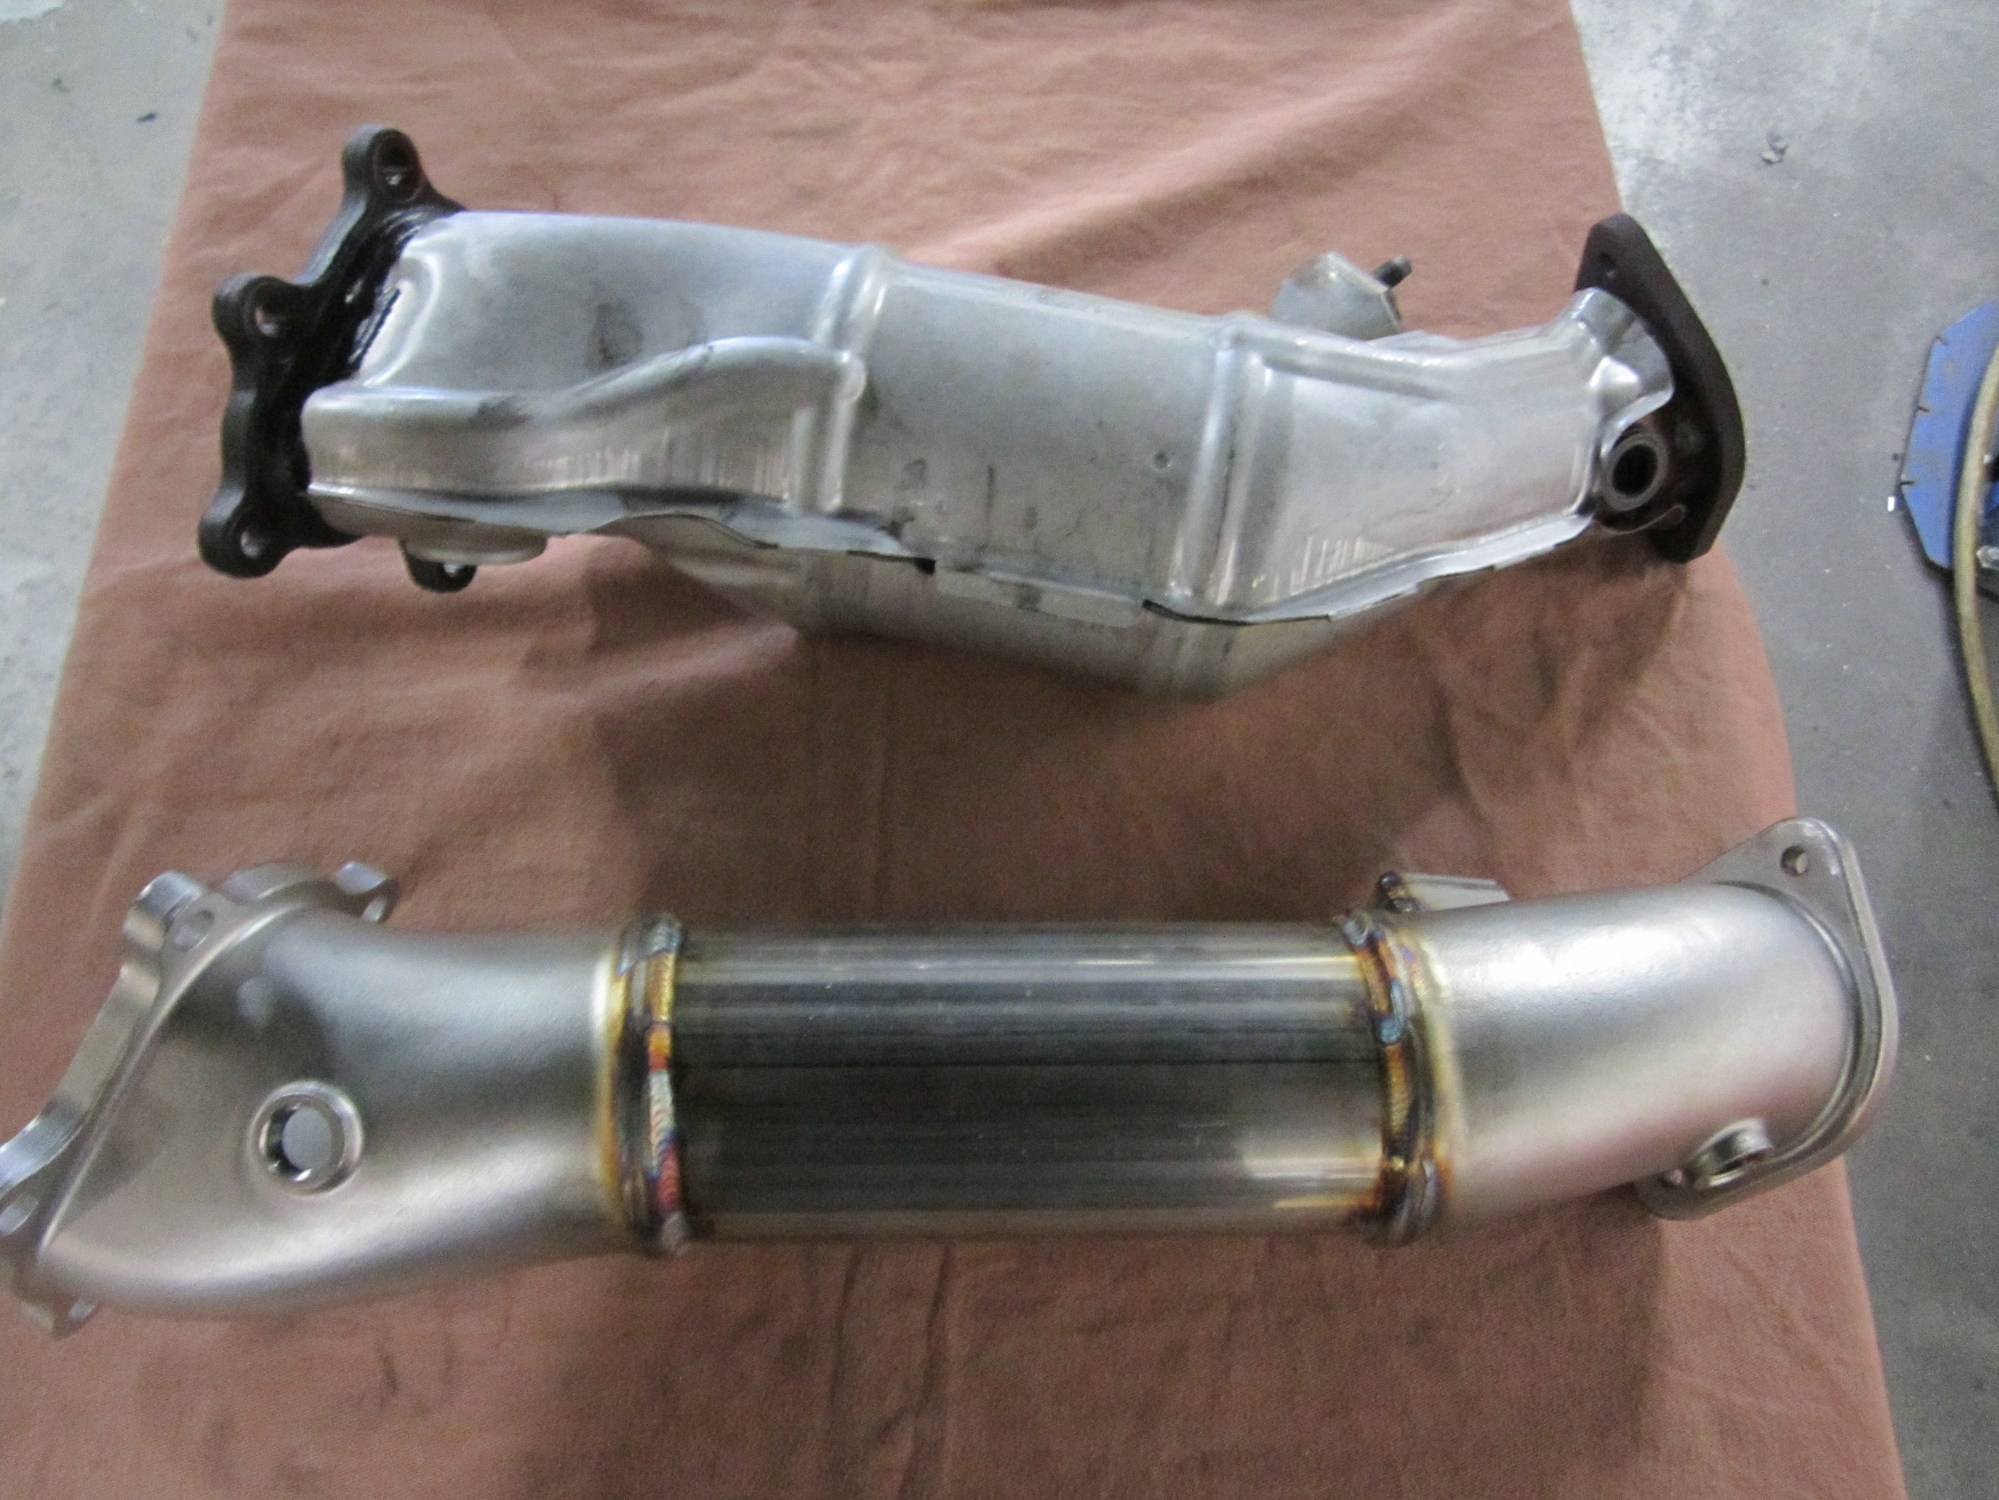 hight resolution of mike wanted a boost in power so we started with a host of alpha bolt ons from ams including their downpipes and y pipe w muffler